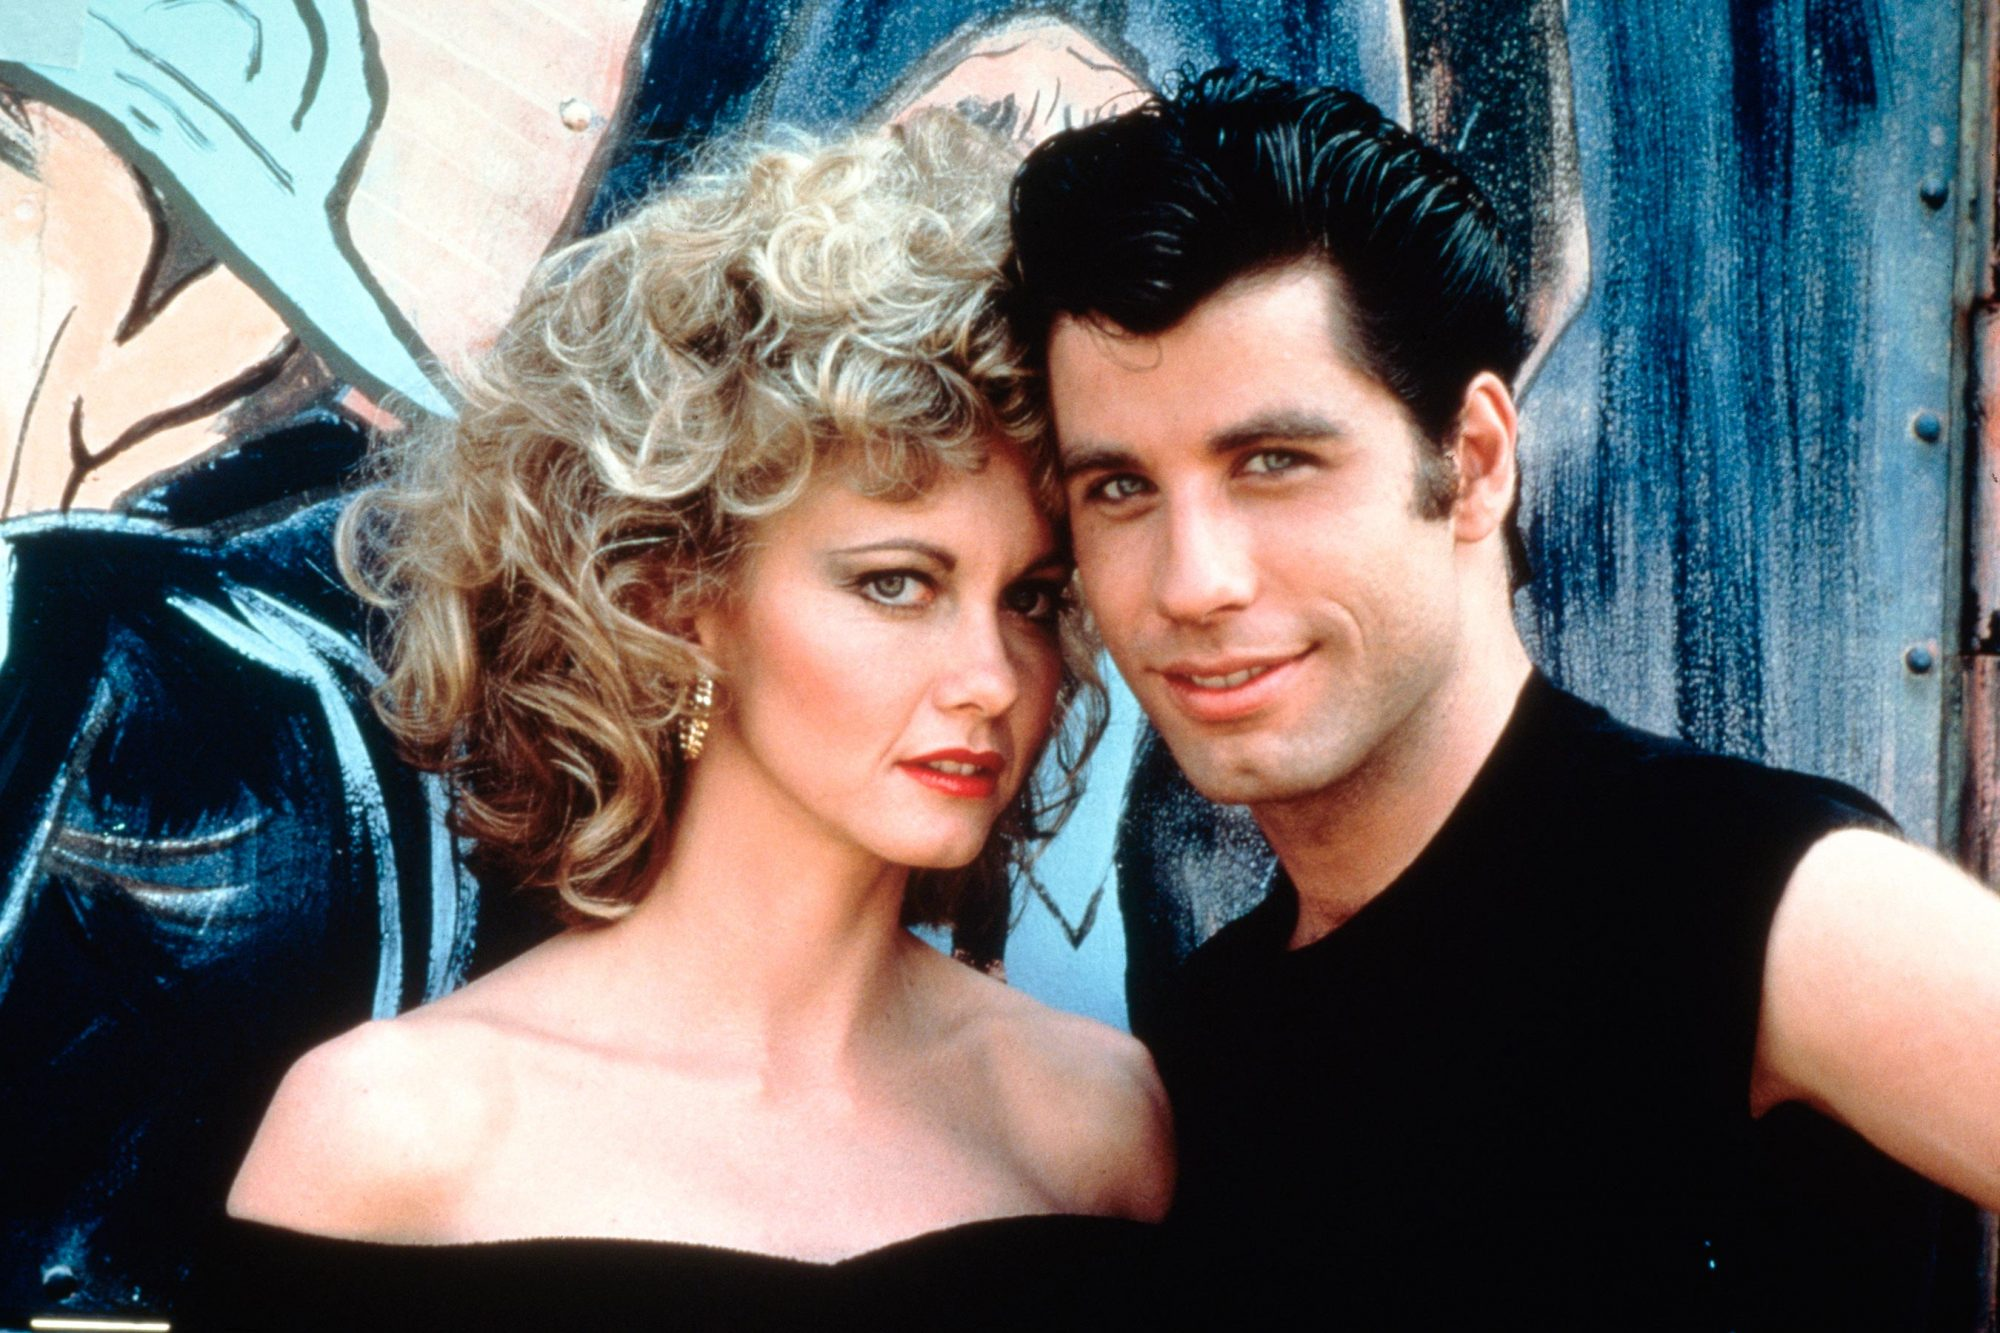 actress Olivia Newton-John and American actor John Travolta in Grease